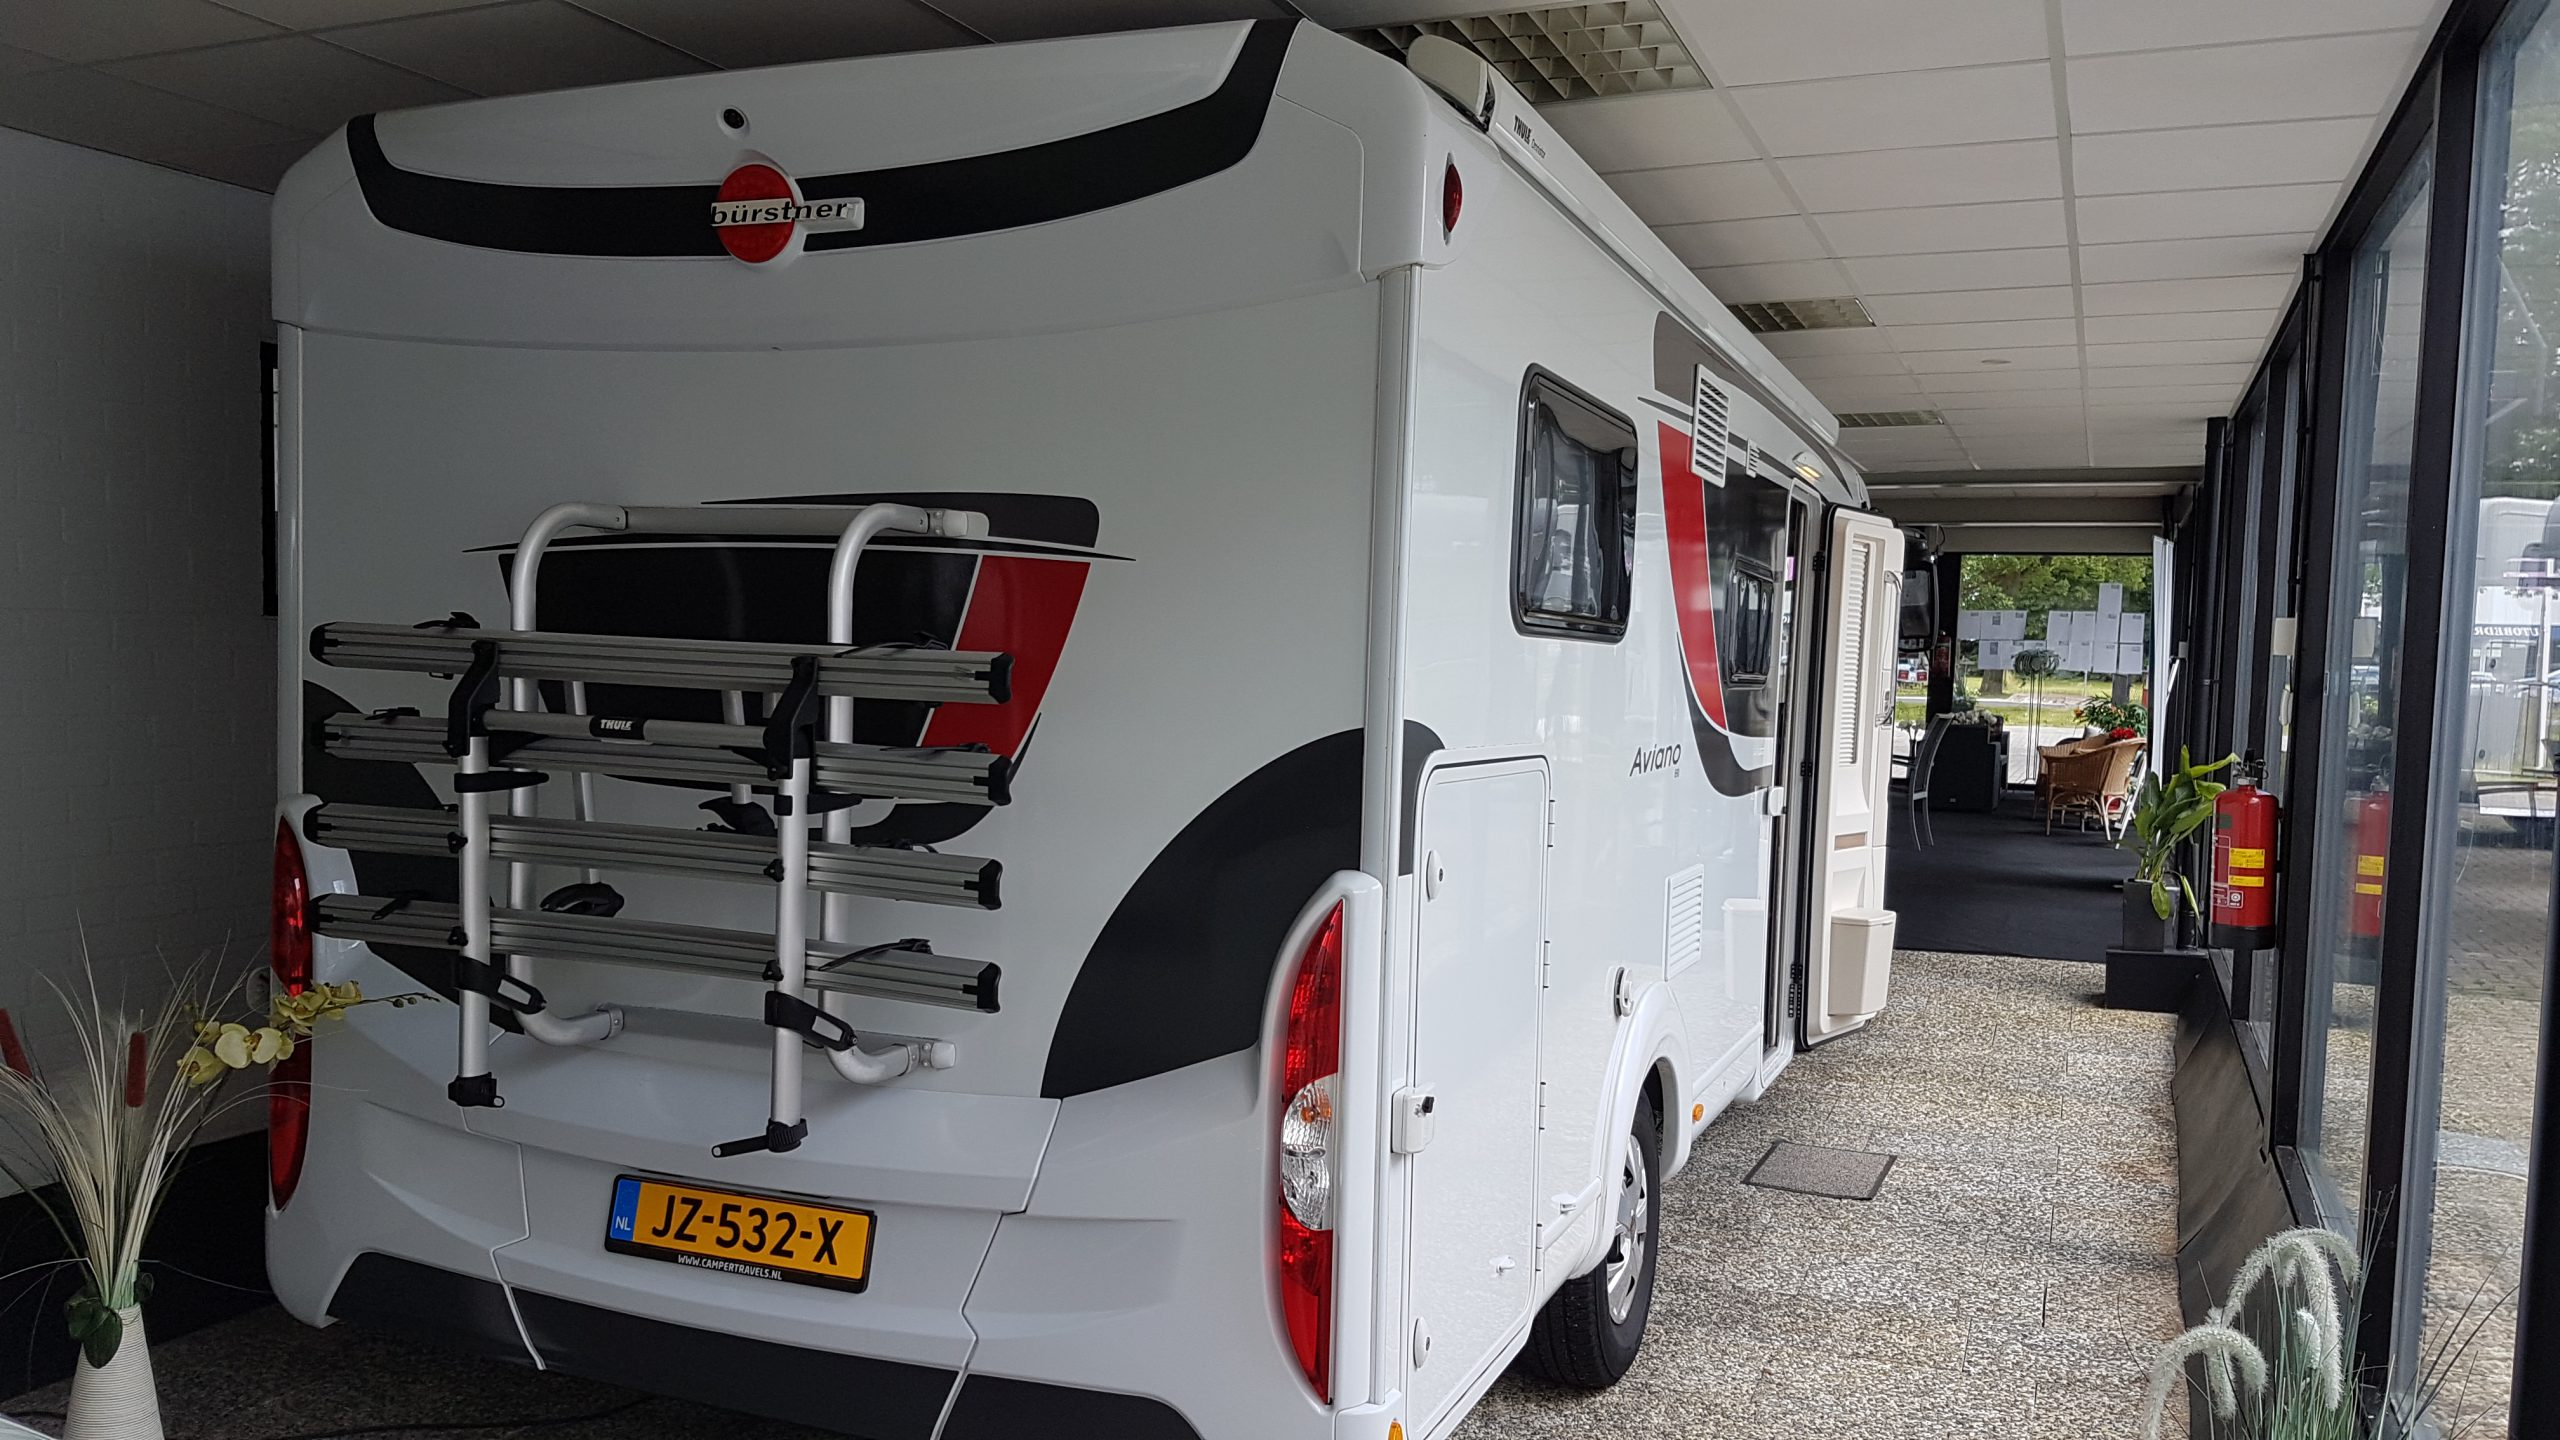 20190616 130642 scaled | Camper Deluxe